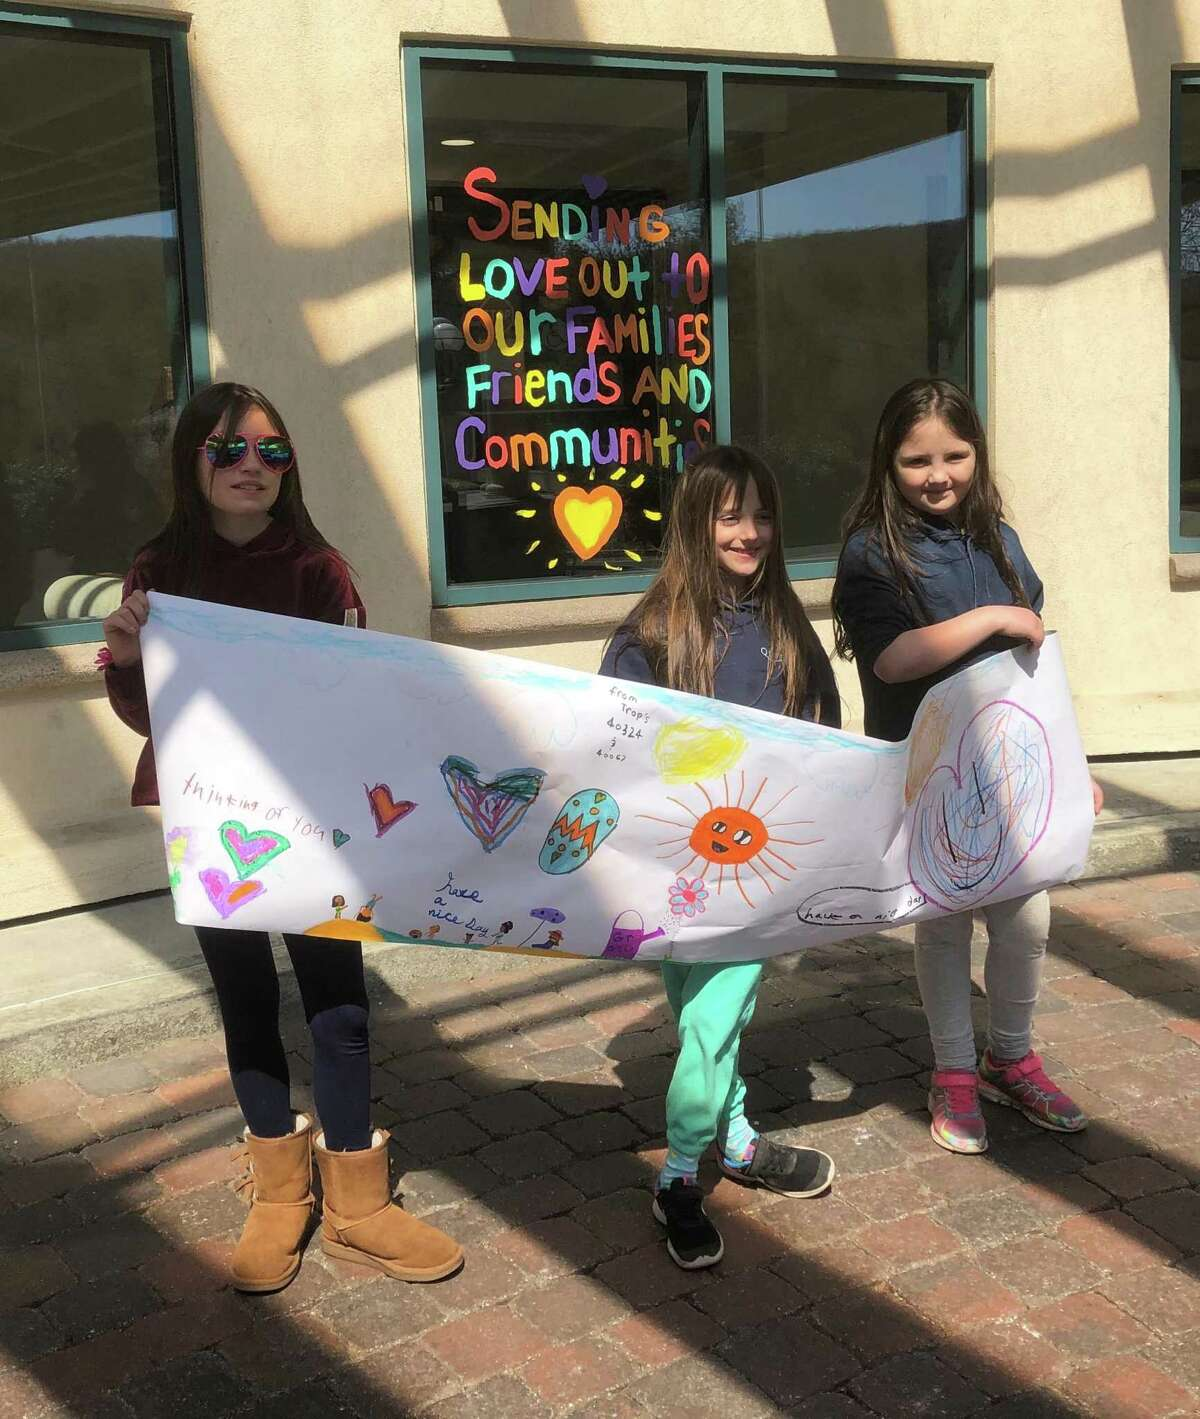 Members of Girl Scout Troop 40324 and Brownie Troop 40067 in New Milford, from left to right,Lydia, Sonya and Alys Hyde, recently paid a visit to Candlewood Valley Health & Rehabilitation Center in town to deliver a message of cheer.